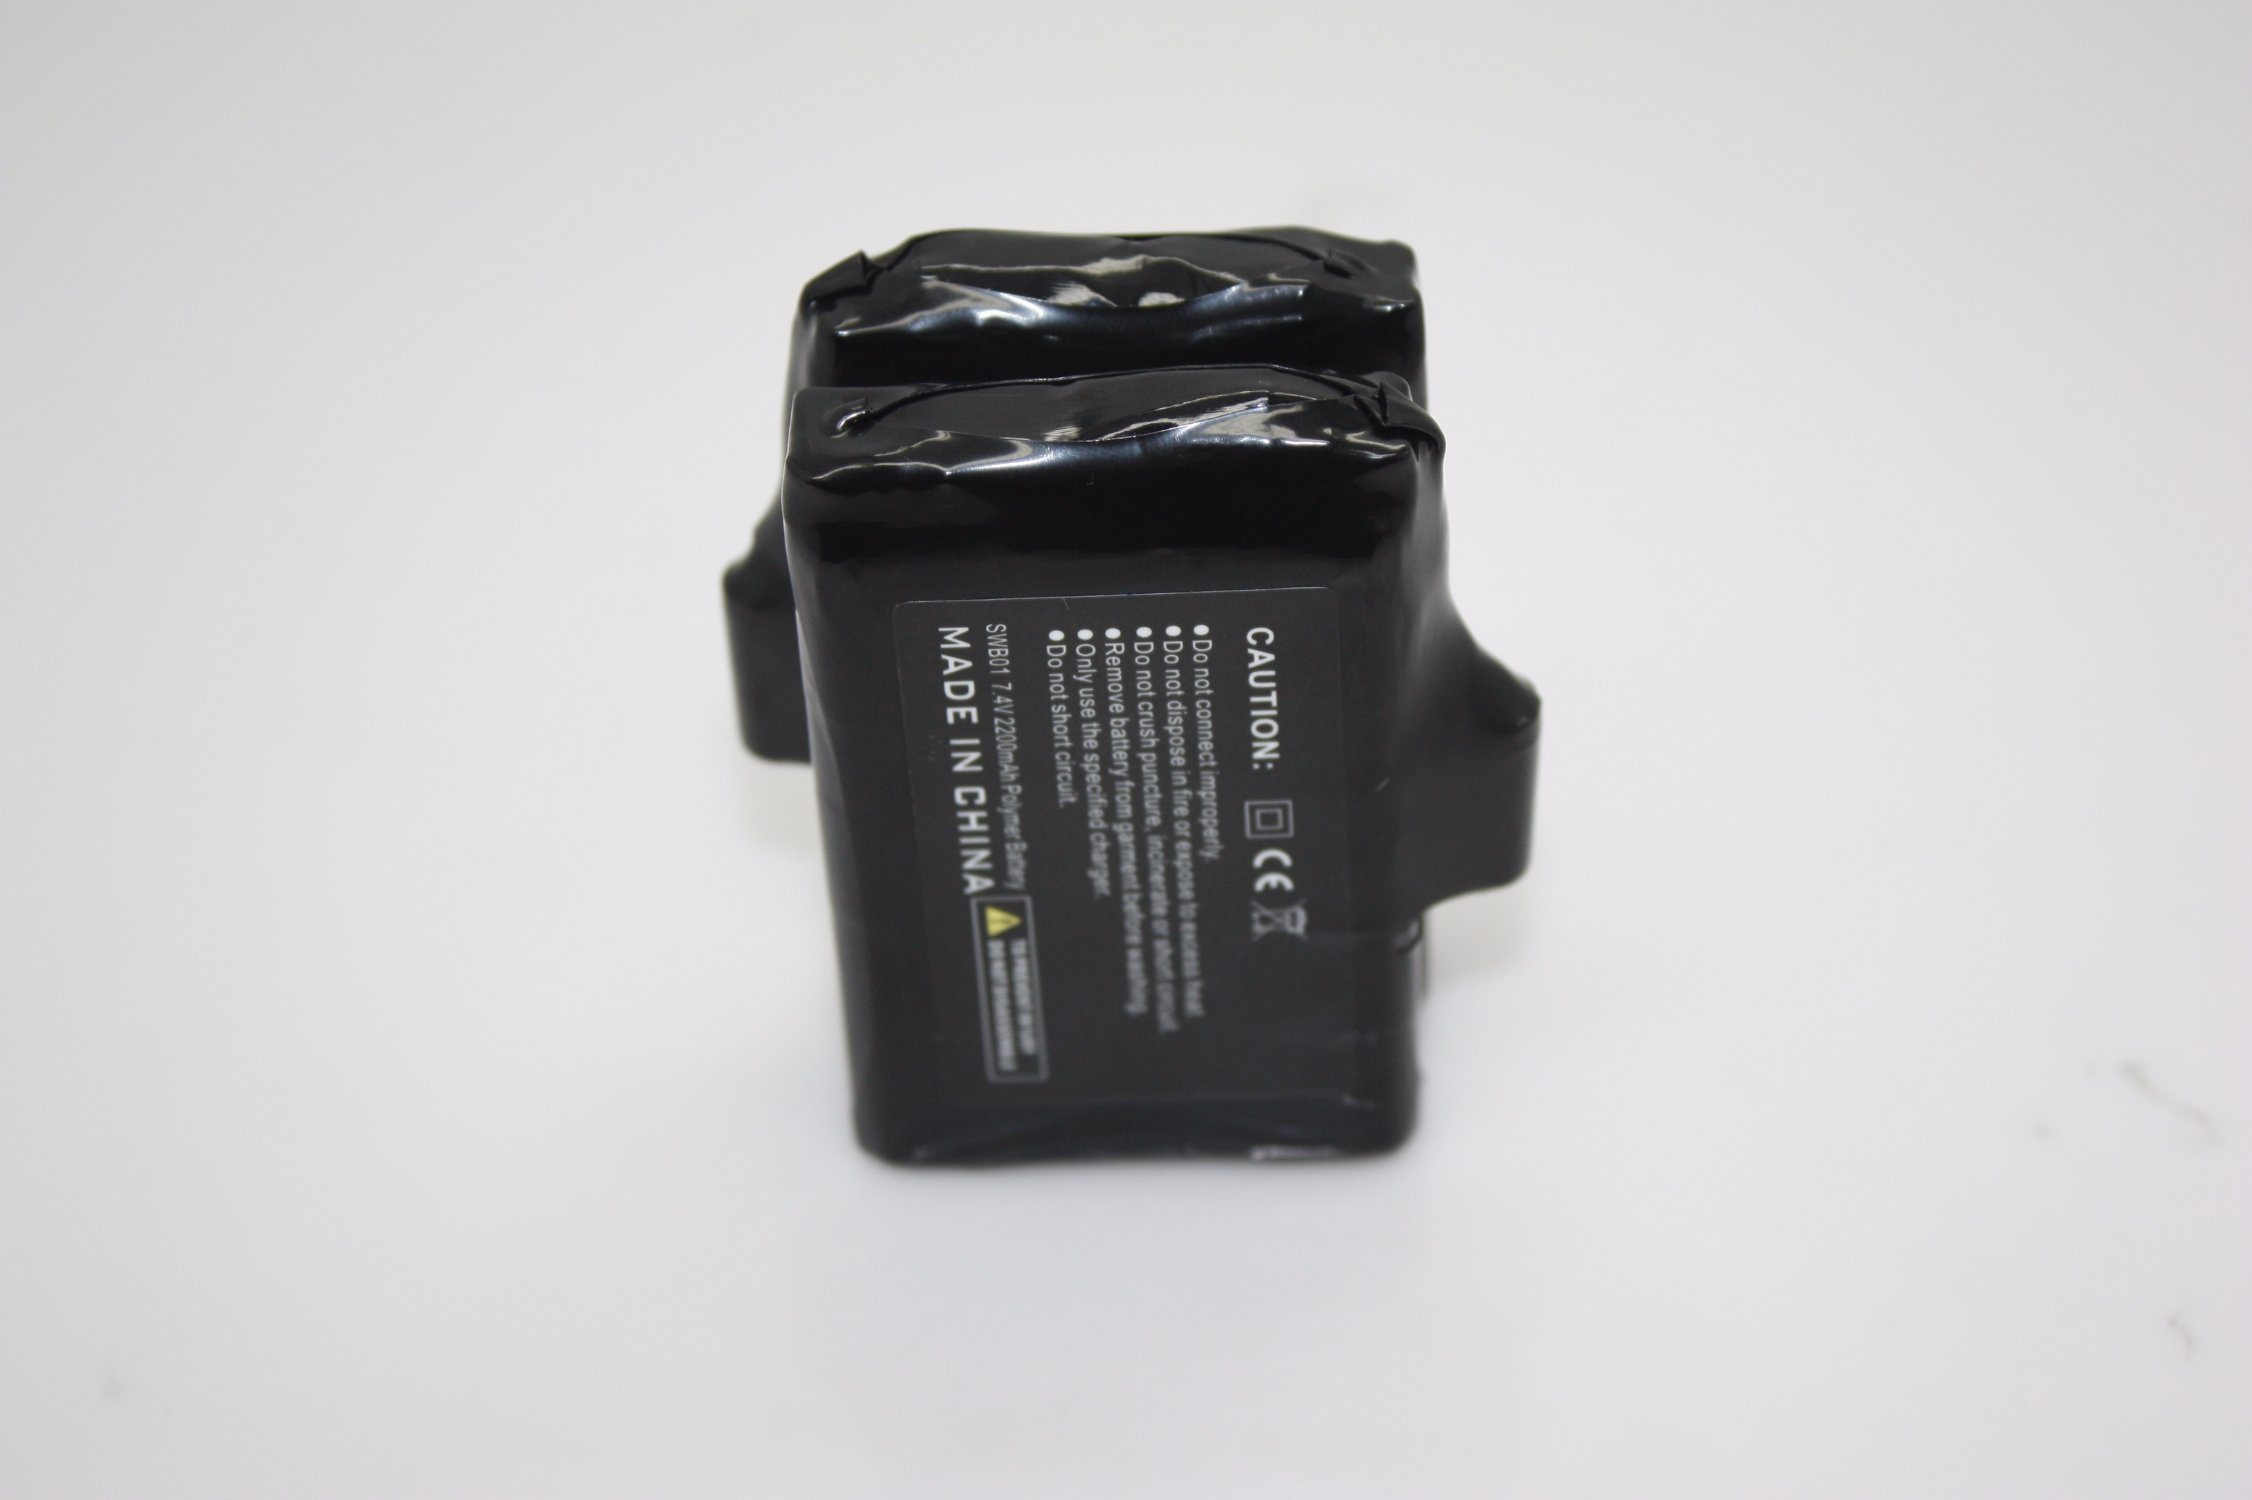 7.4V, 2200mAh Battery for Heated Glove(GB-2000)